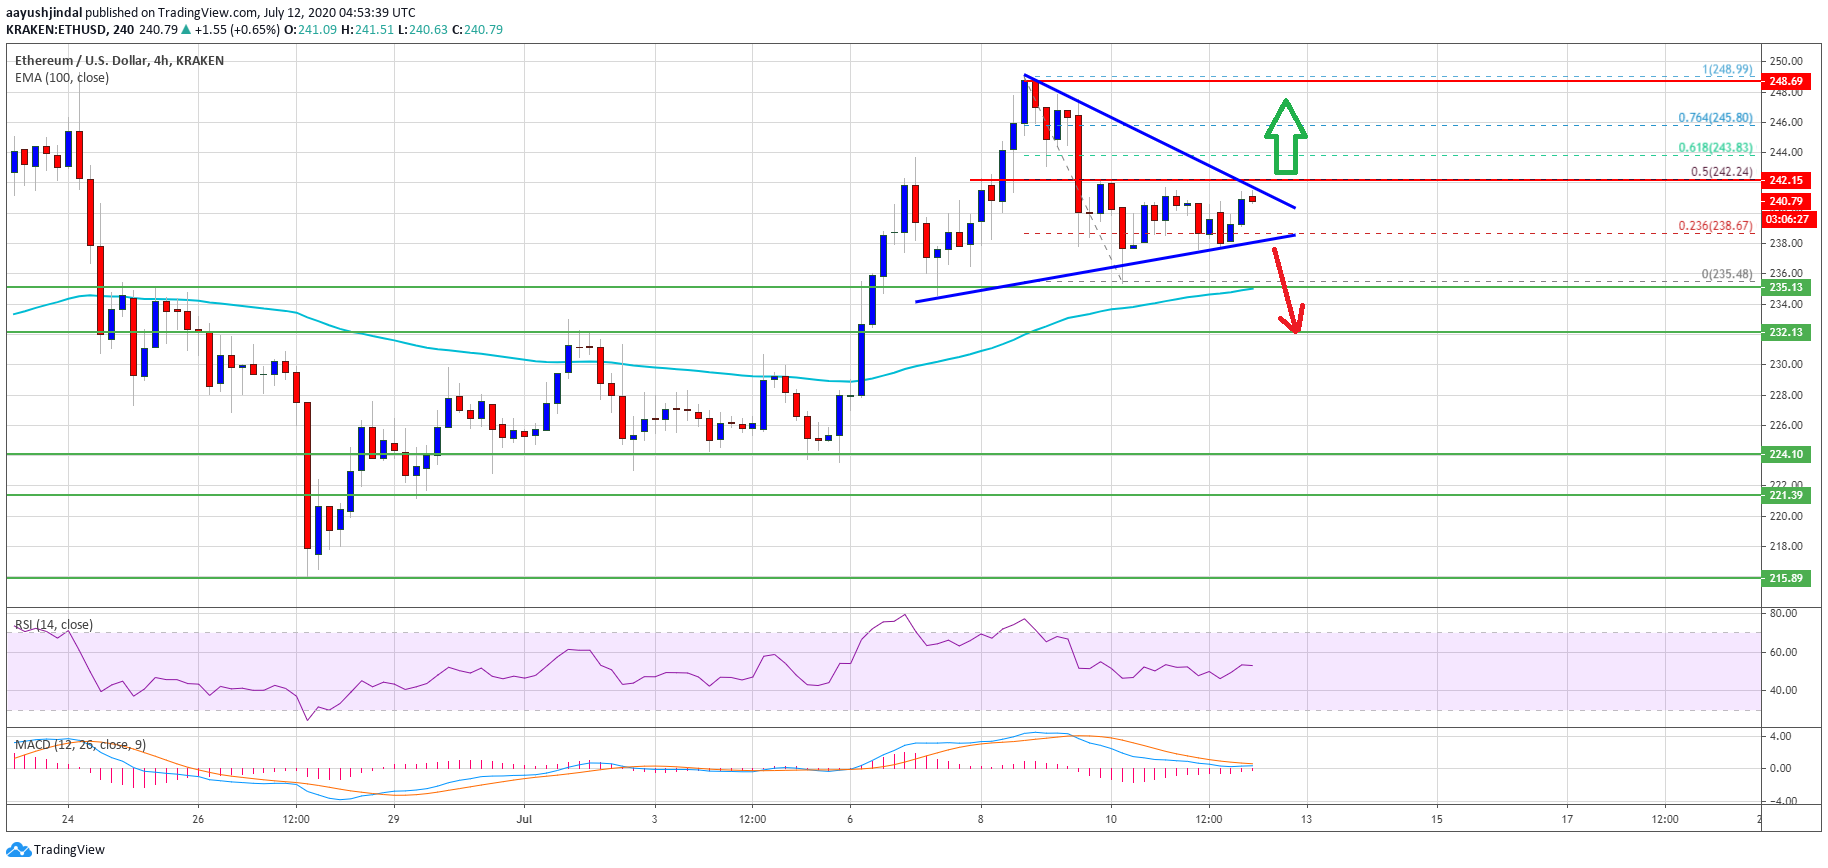 Beware Bears: Indicators Suggest Ethereum Could Still Rally Above $250